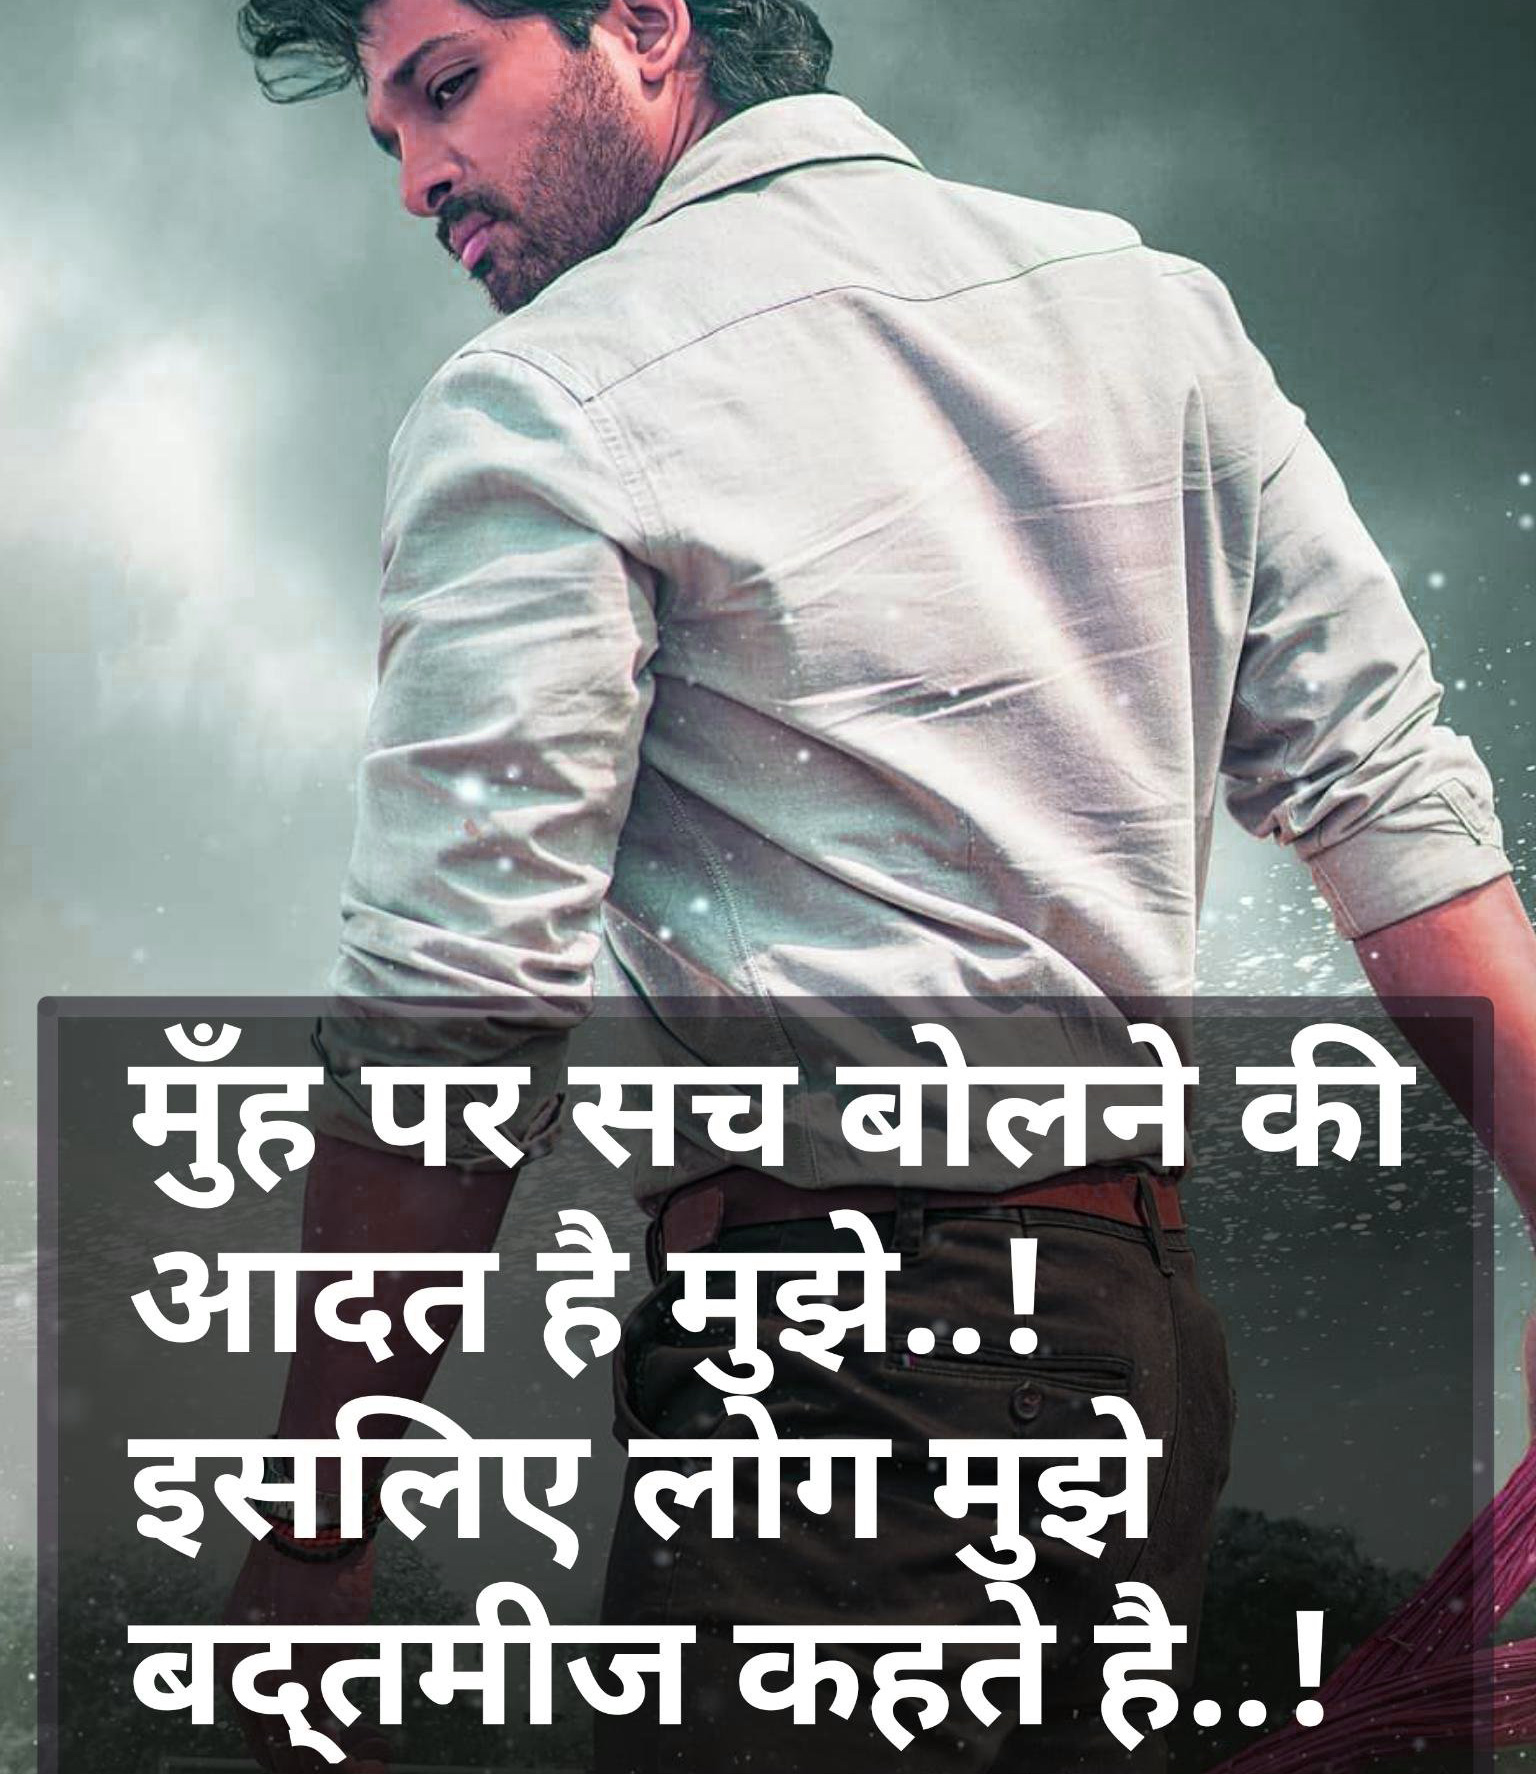 Hindi Quotes Whatsapp DP Images Download 76